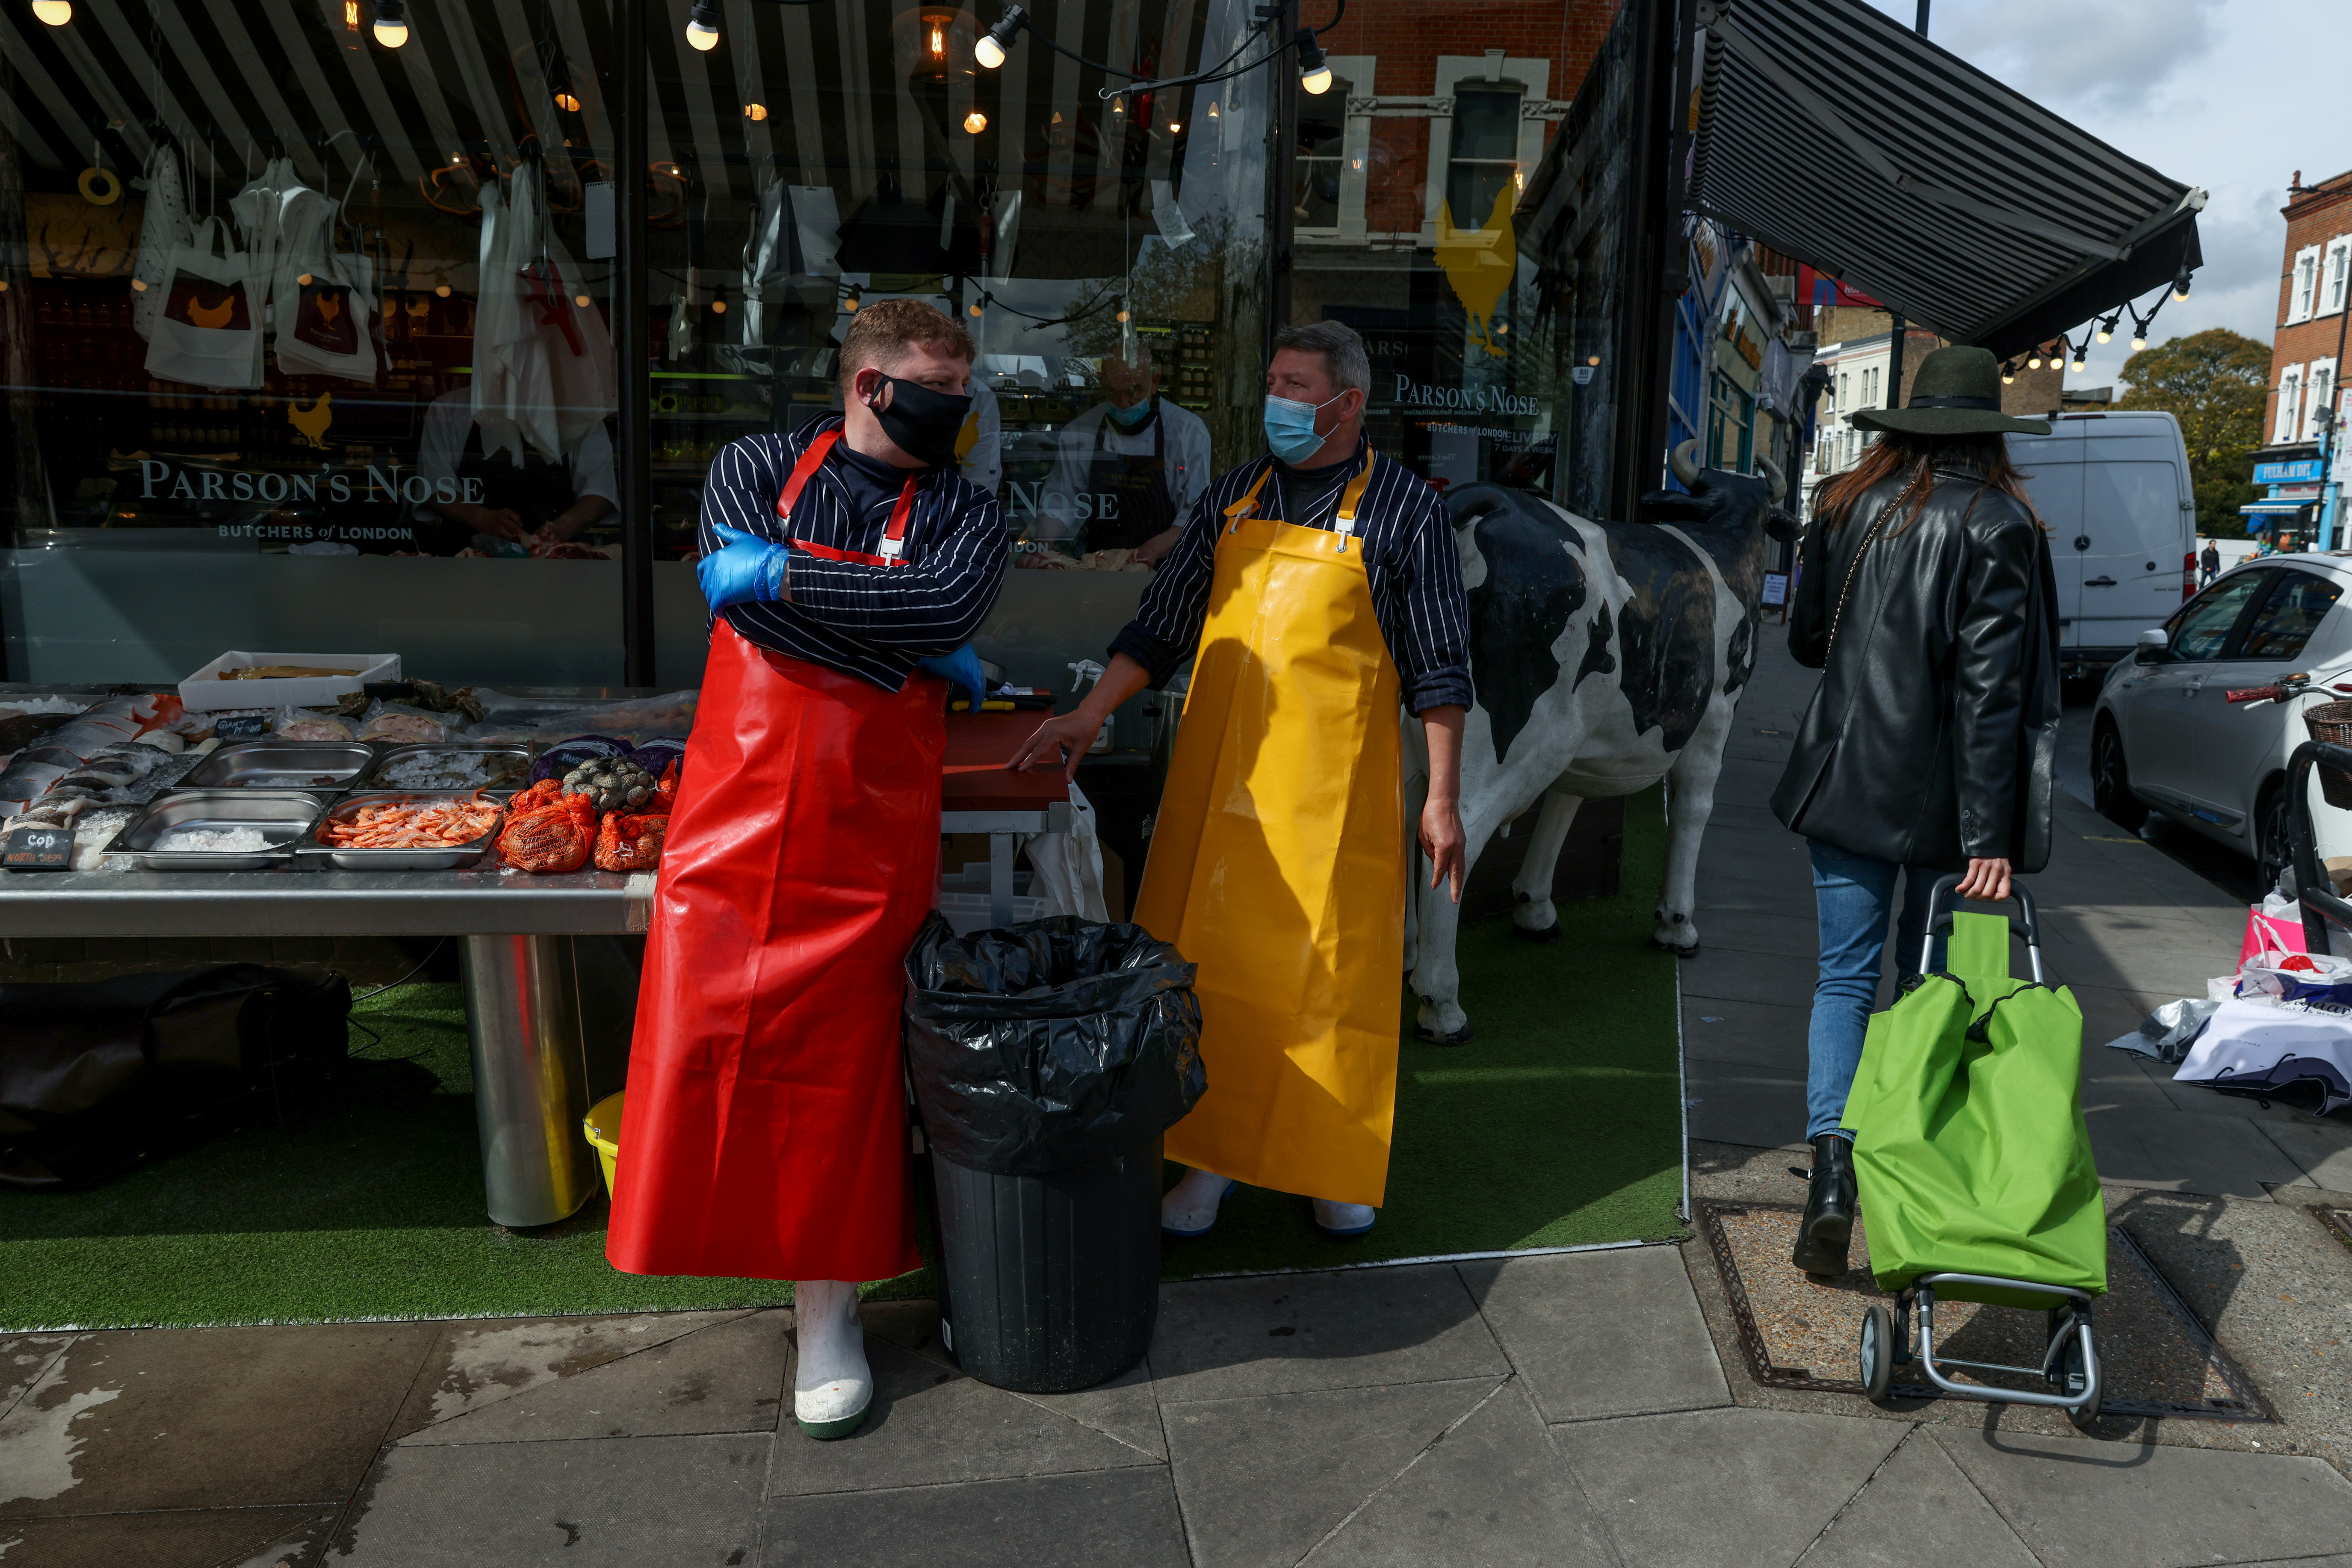 Fishmongers John Arkle and Paul Greenslade work at a fish stall outside a butcher's shop on the Fulham Road, in Fulham, London, Britain May 6, 2021. REUTERS/Kevin Coombs